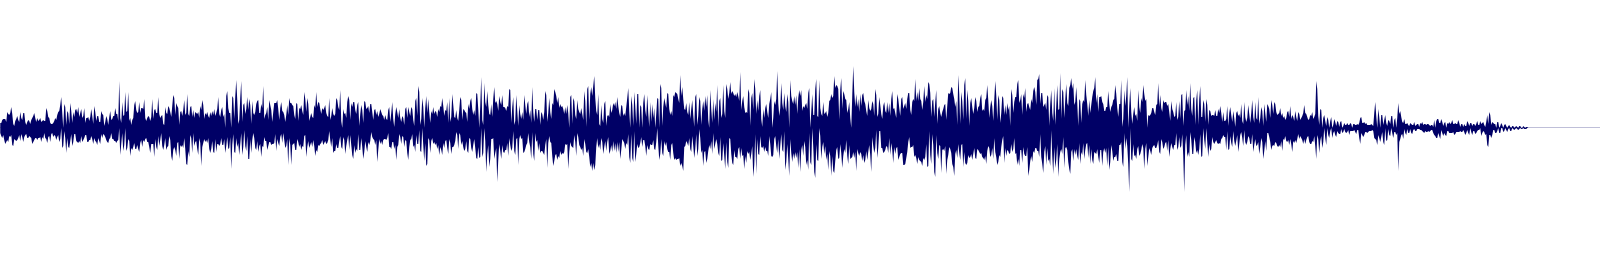 waveform of track #129697